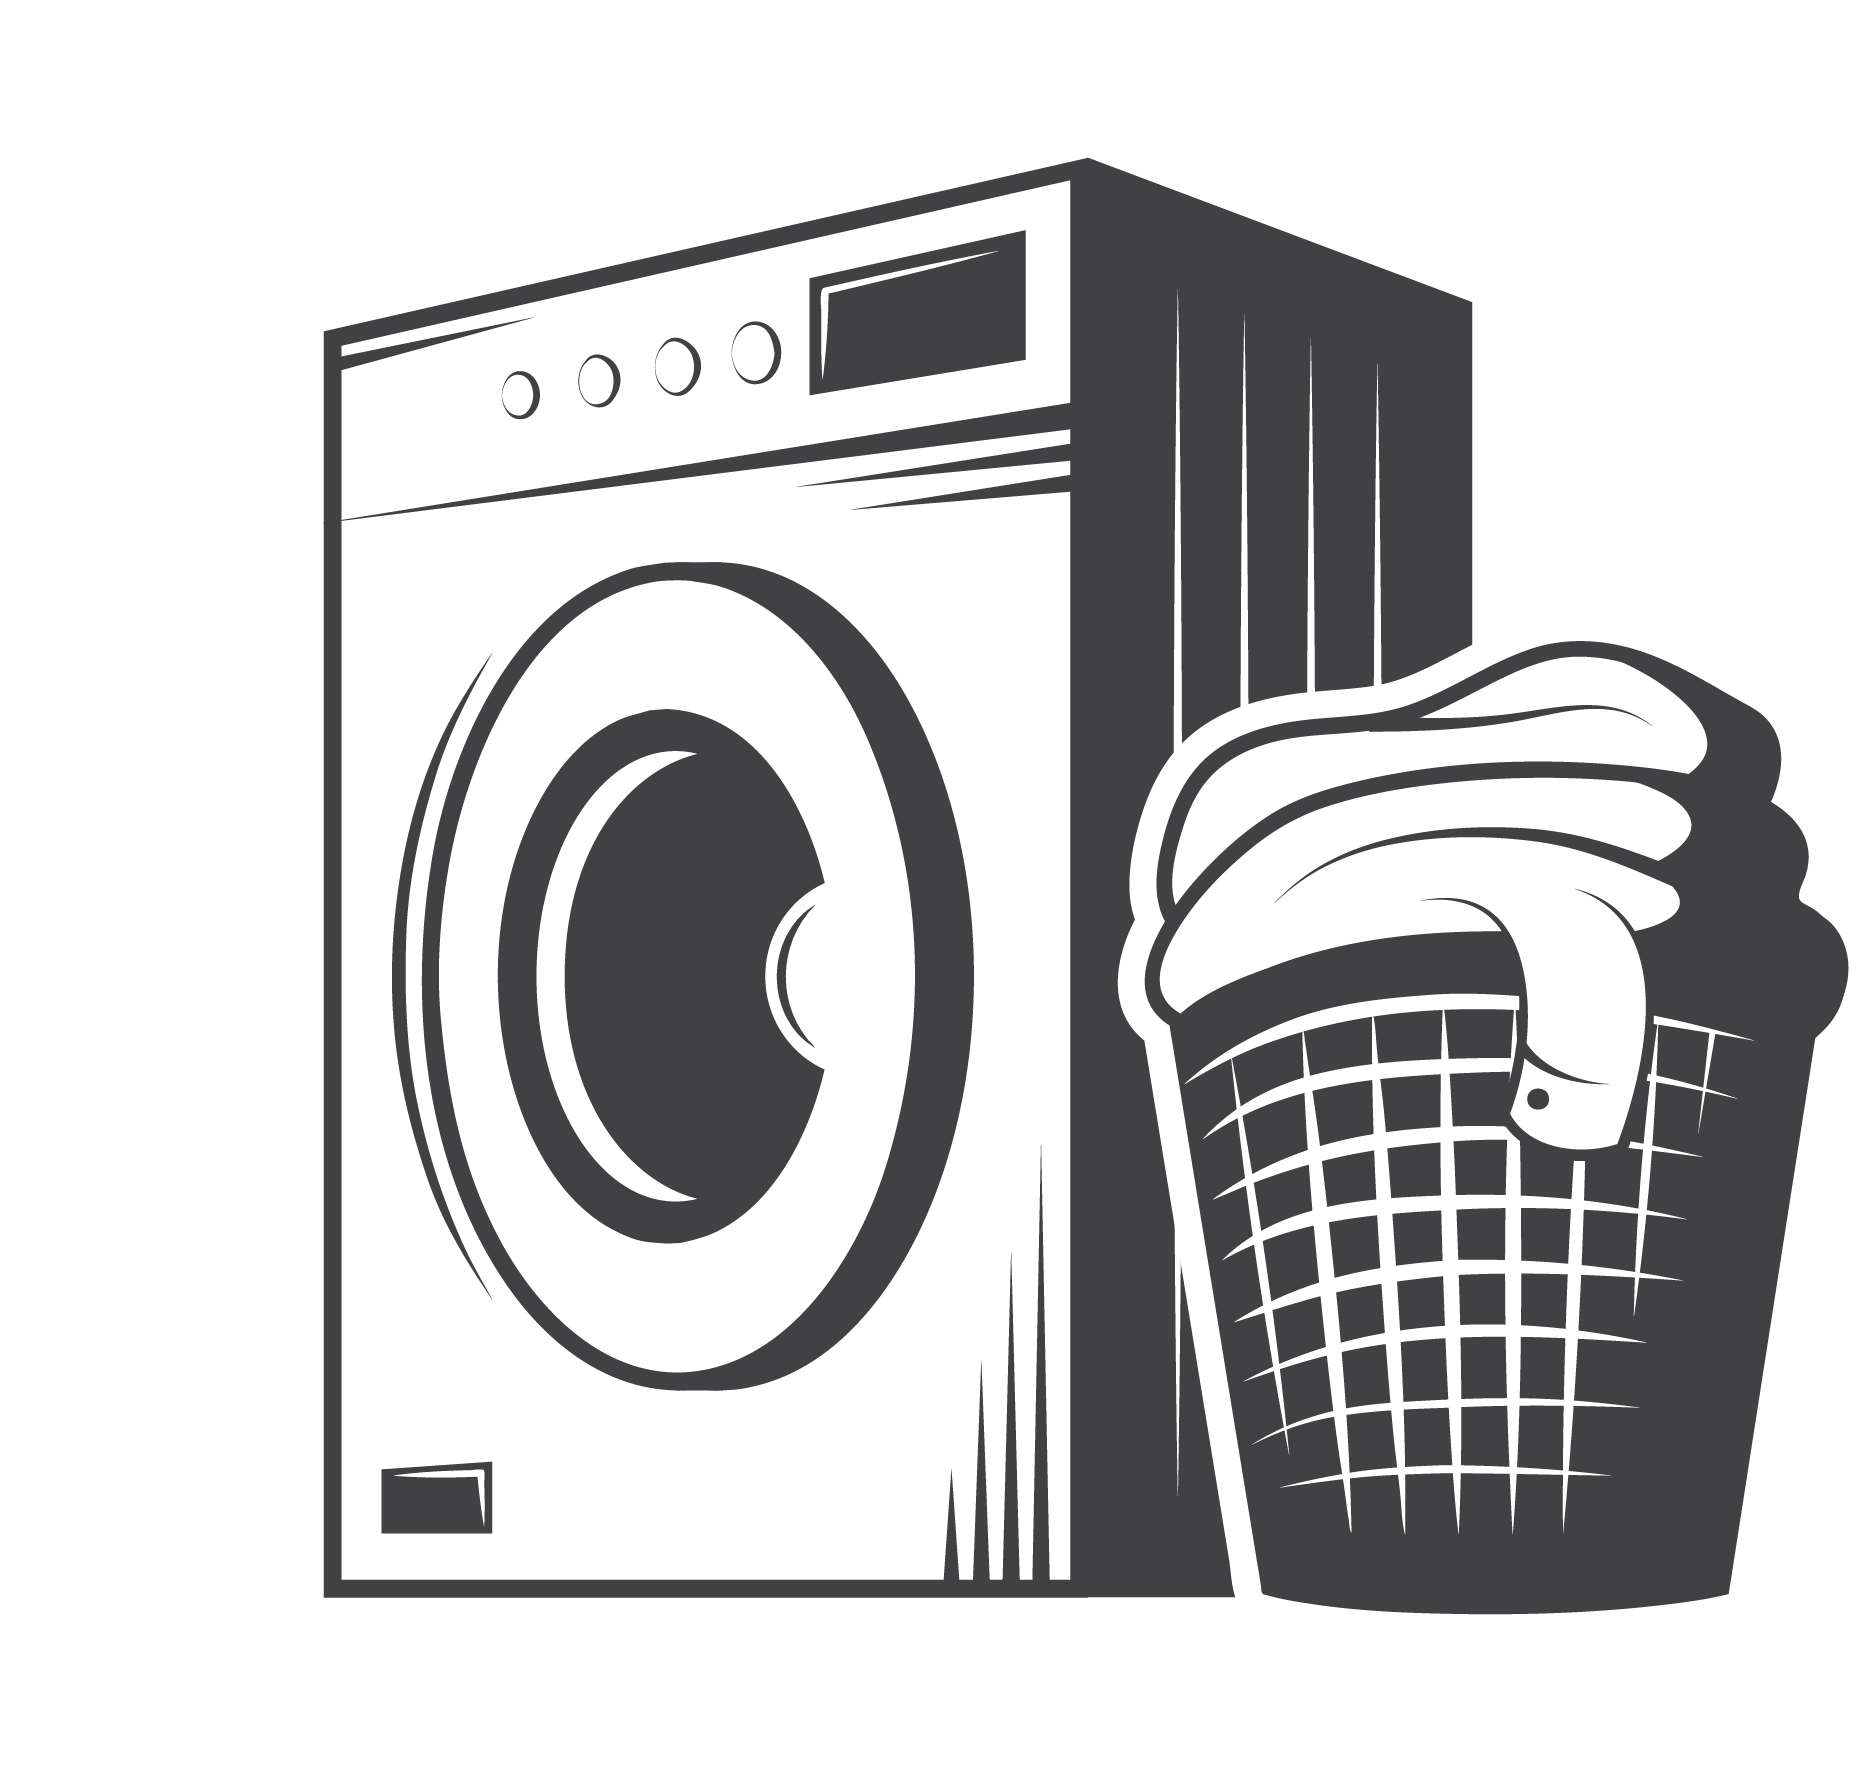 Housekeeping clipart black and white. Cleaning clip art washing